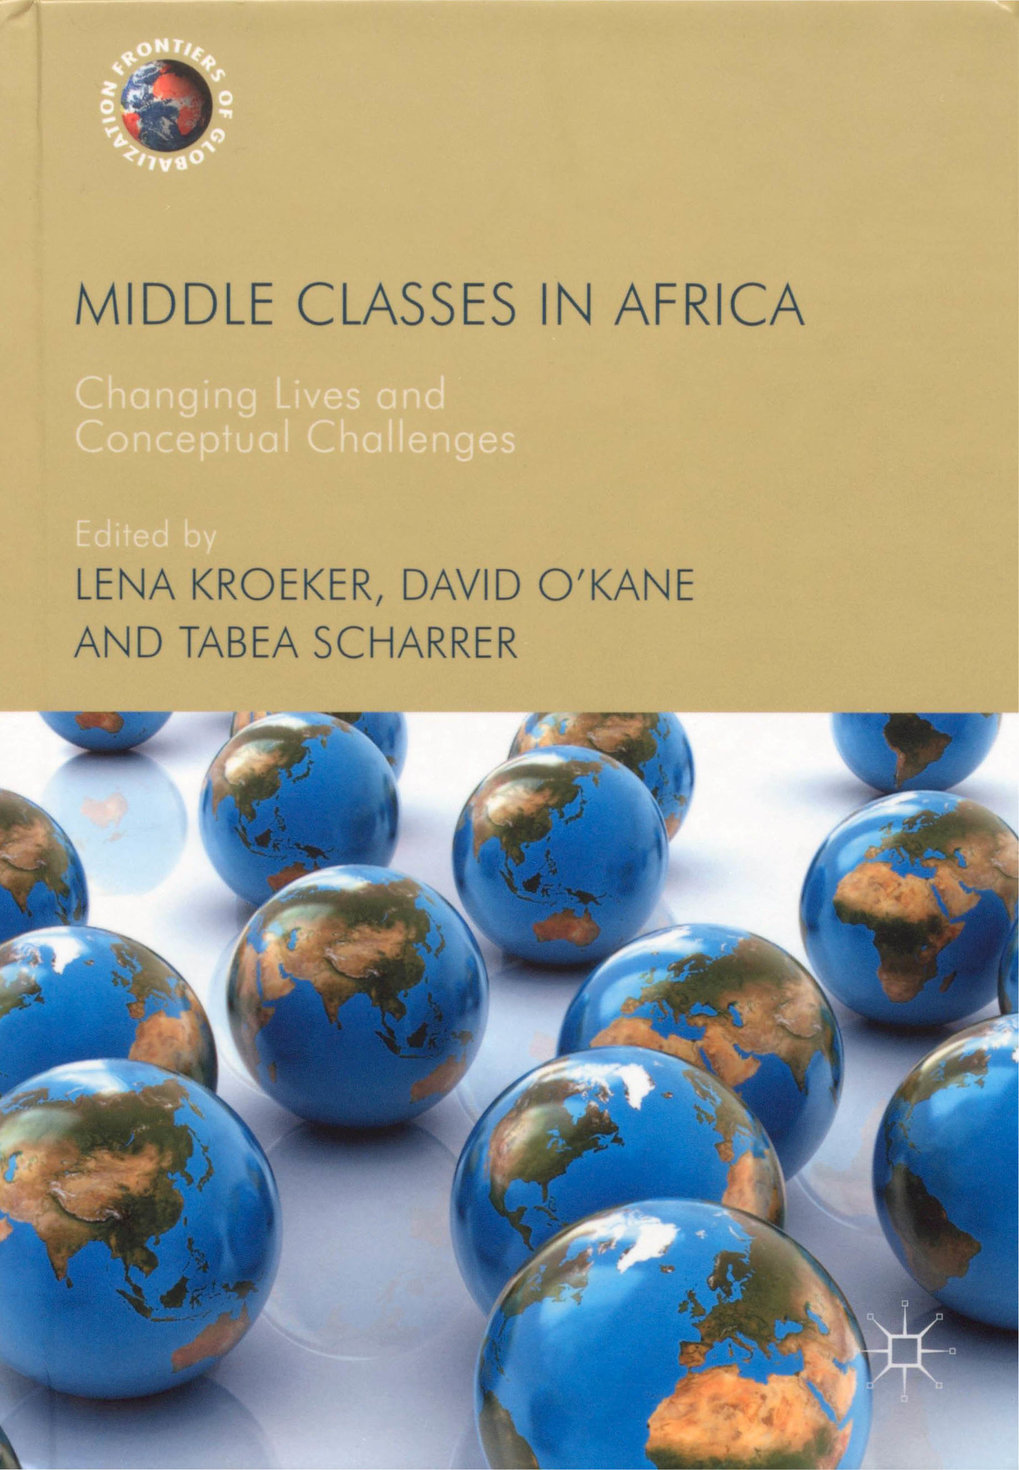 Middle classes in Africa: changing lives and conceptual challenges